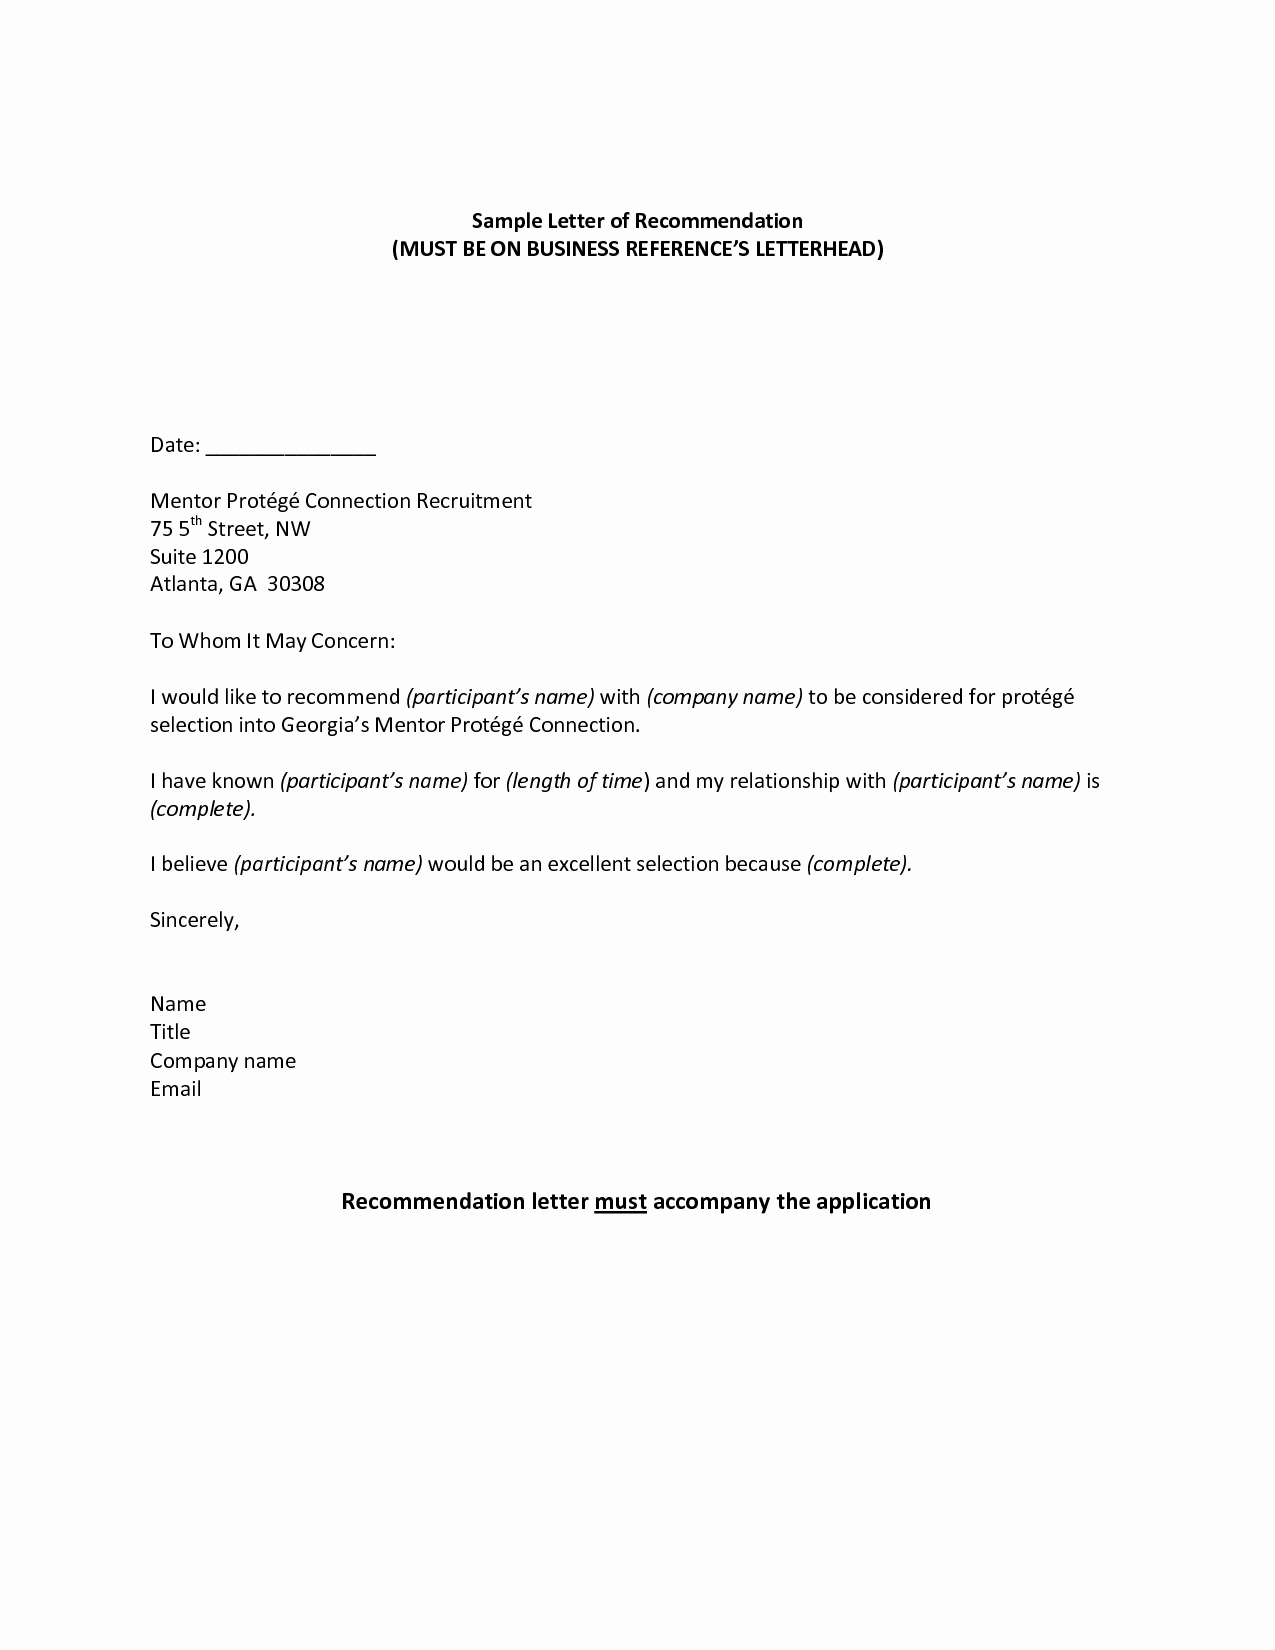 Letters Of Recommendation format Samples Awesome Professional Reference Sample Re Mendation Letter Jos